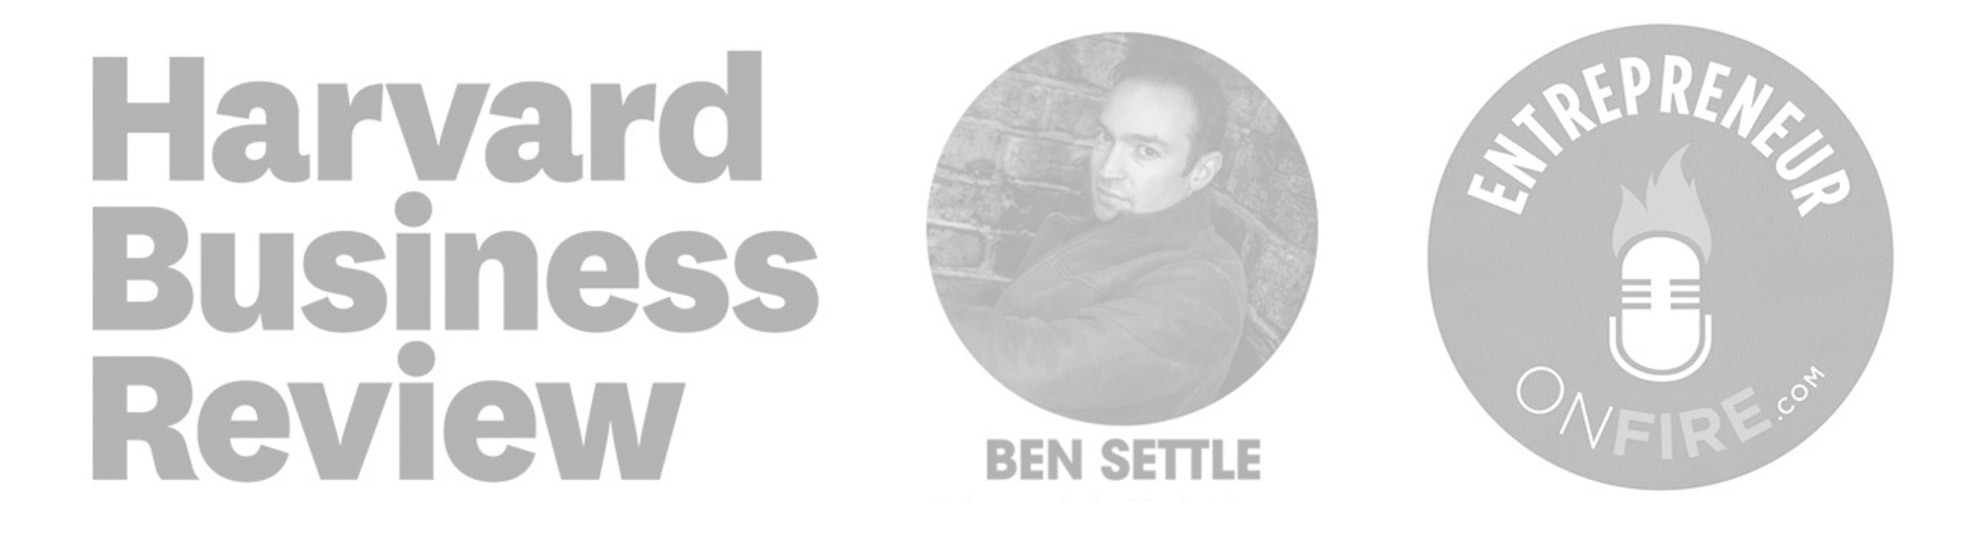 As featured in Harvard Business Review, Ben Settle's Email Players, and Entrepreneurs on Fire